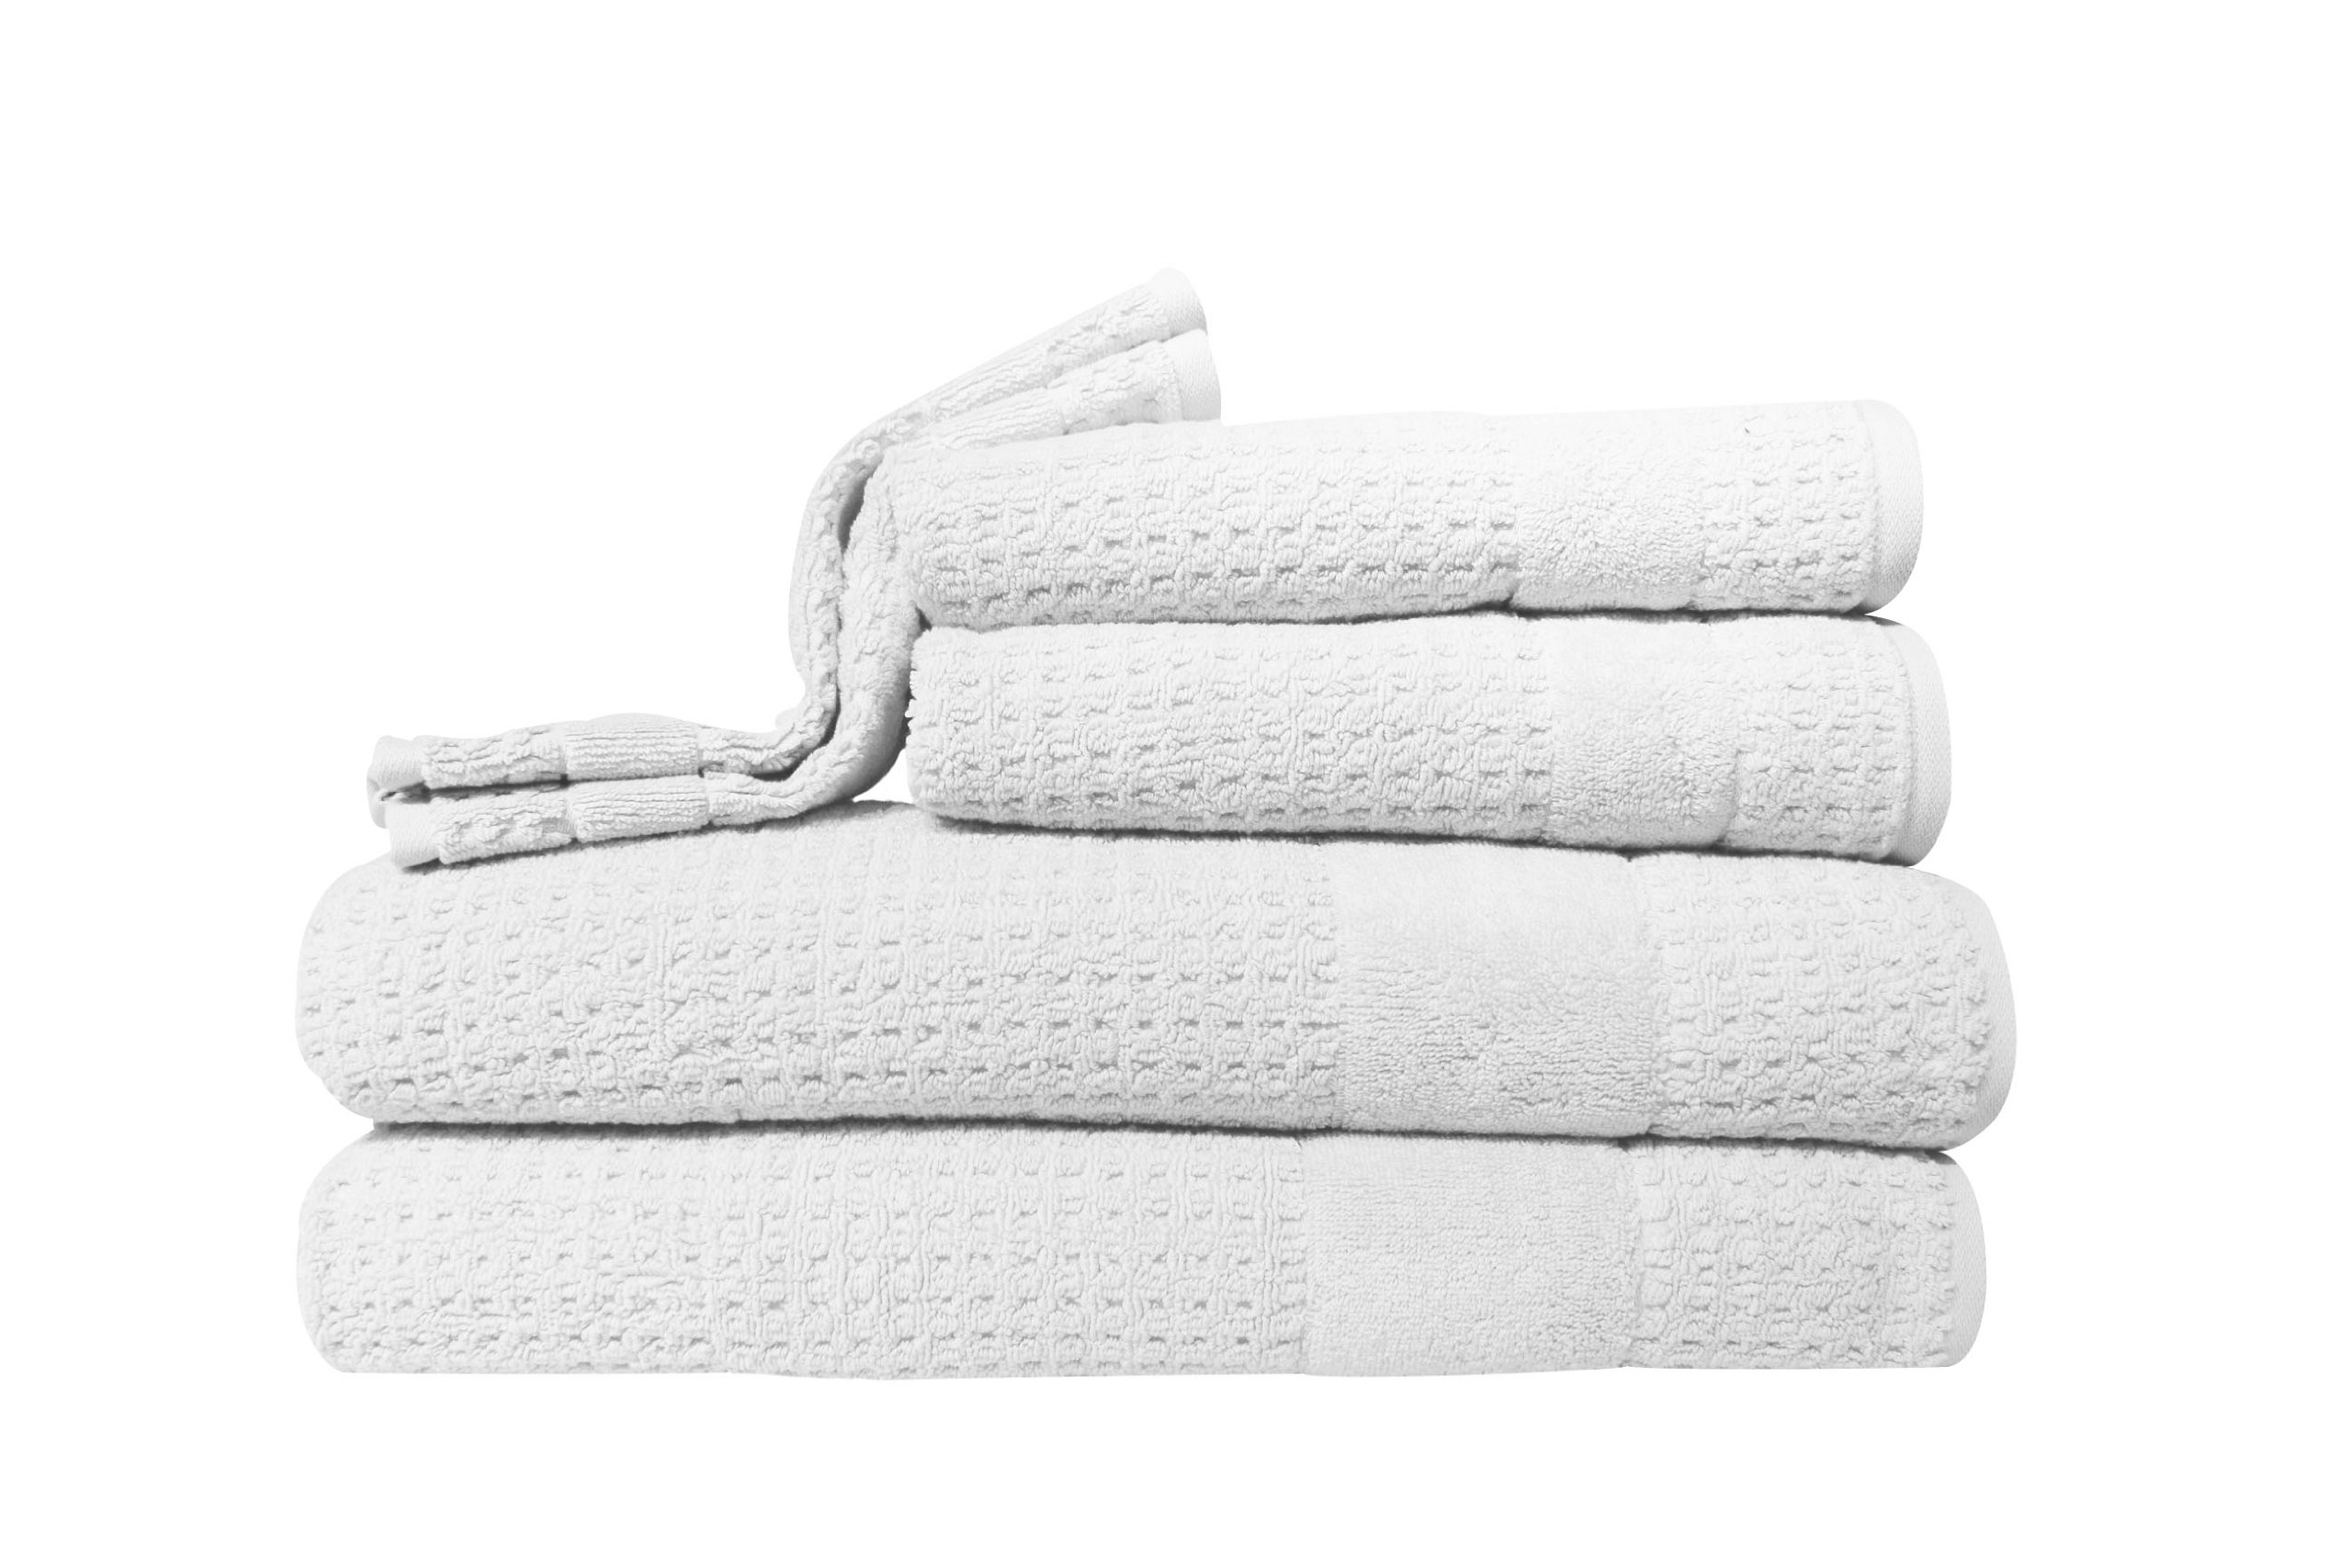 Kassatex Hammam Towel, White, Set of 6